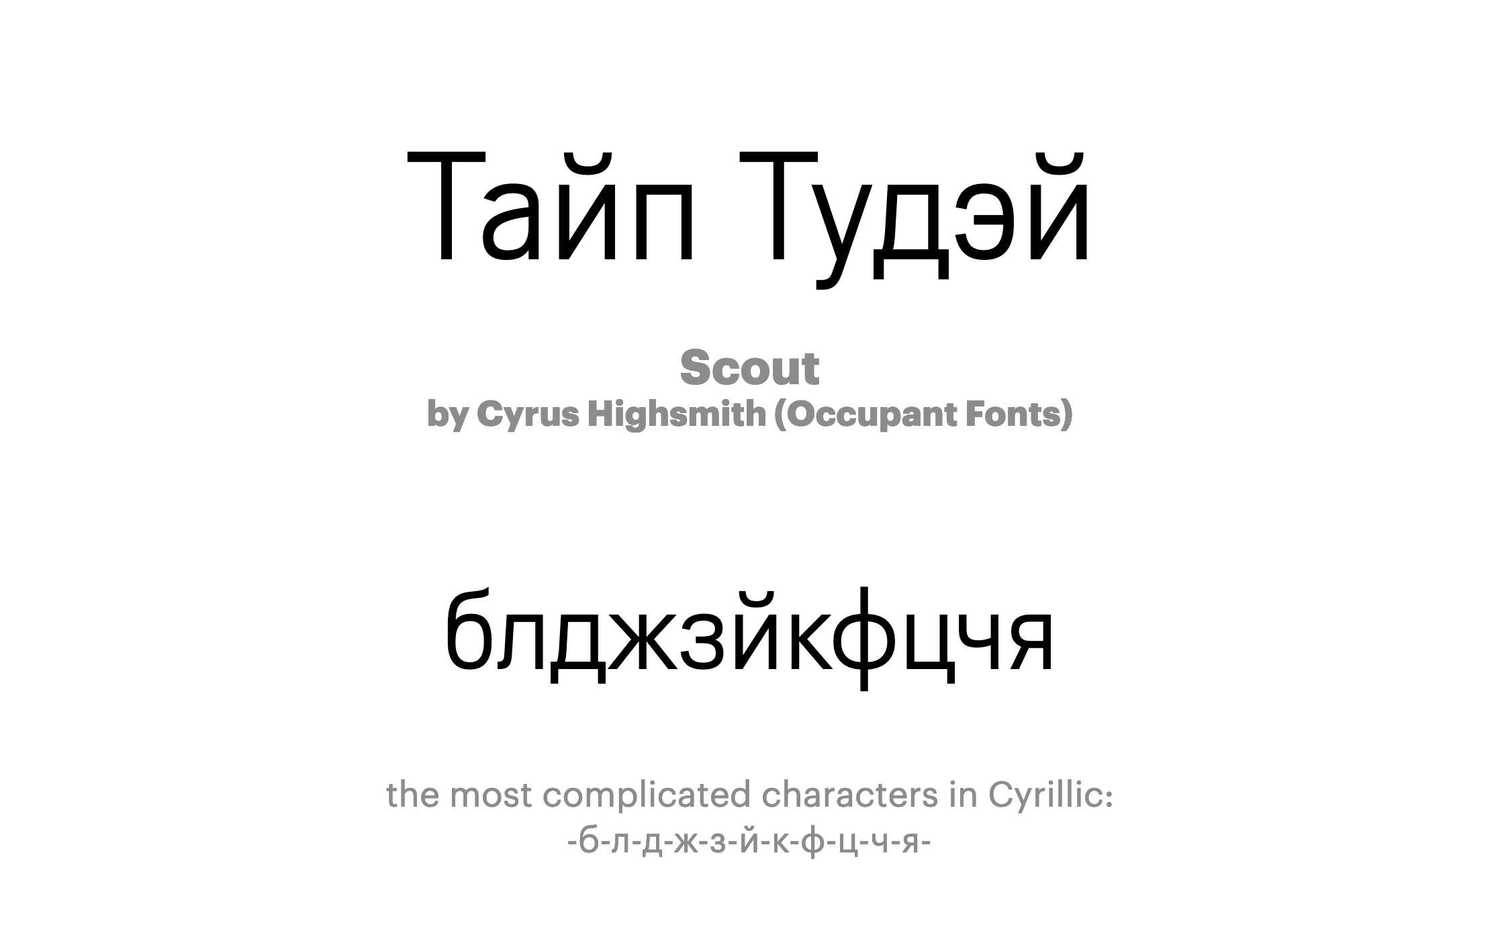 Scout-by-Cyrus-Highsmith-(Occupant-Fonts)